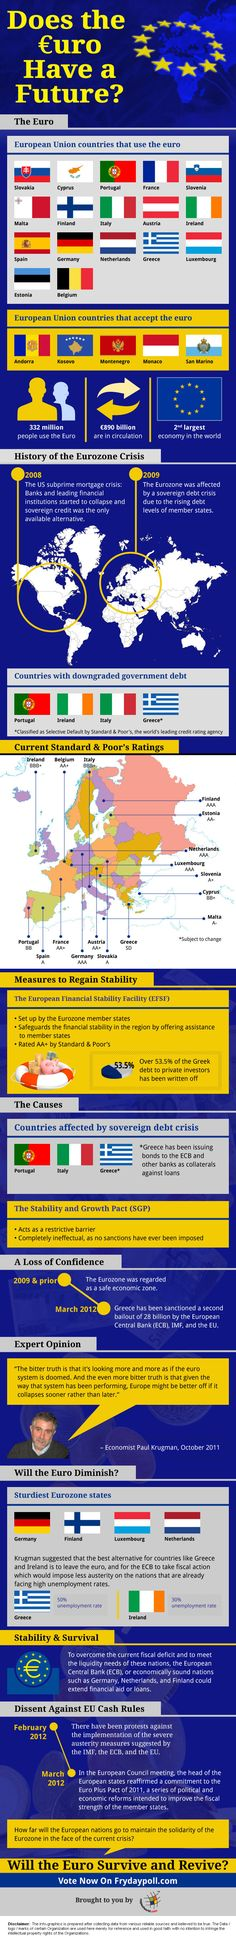 Does The Euro Have a Future? Will The Euro Survive And Revive? Find in-depth review with supportive Infographic, Video and discussion - Let us know what you think - Vote & Comment.